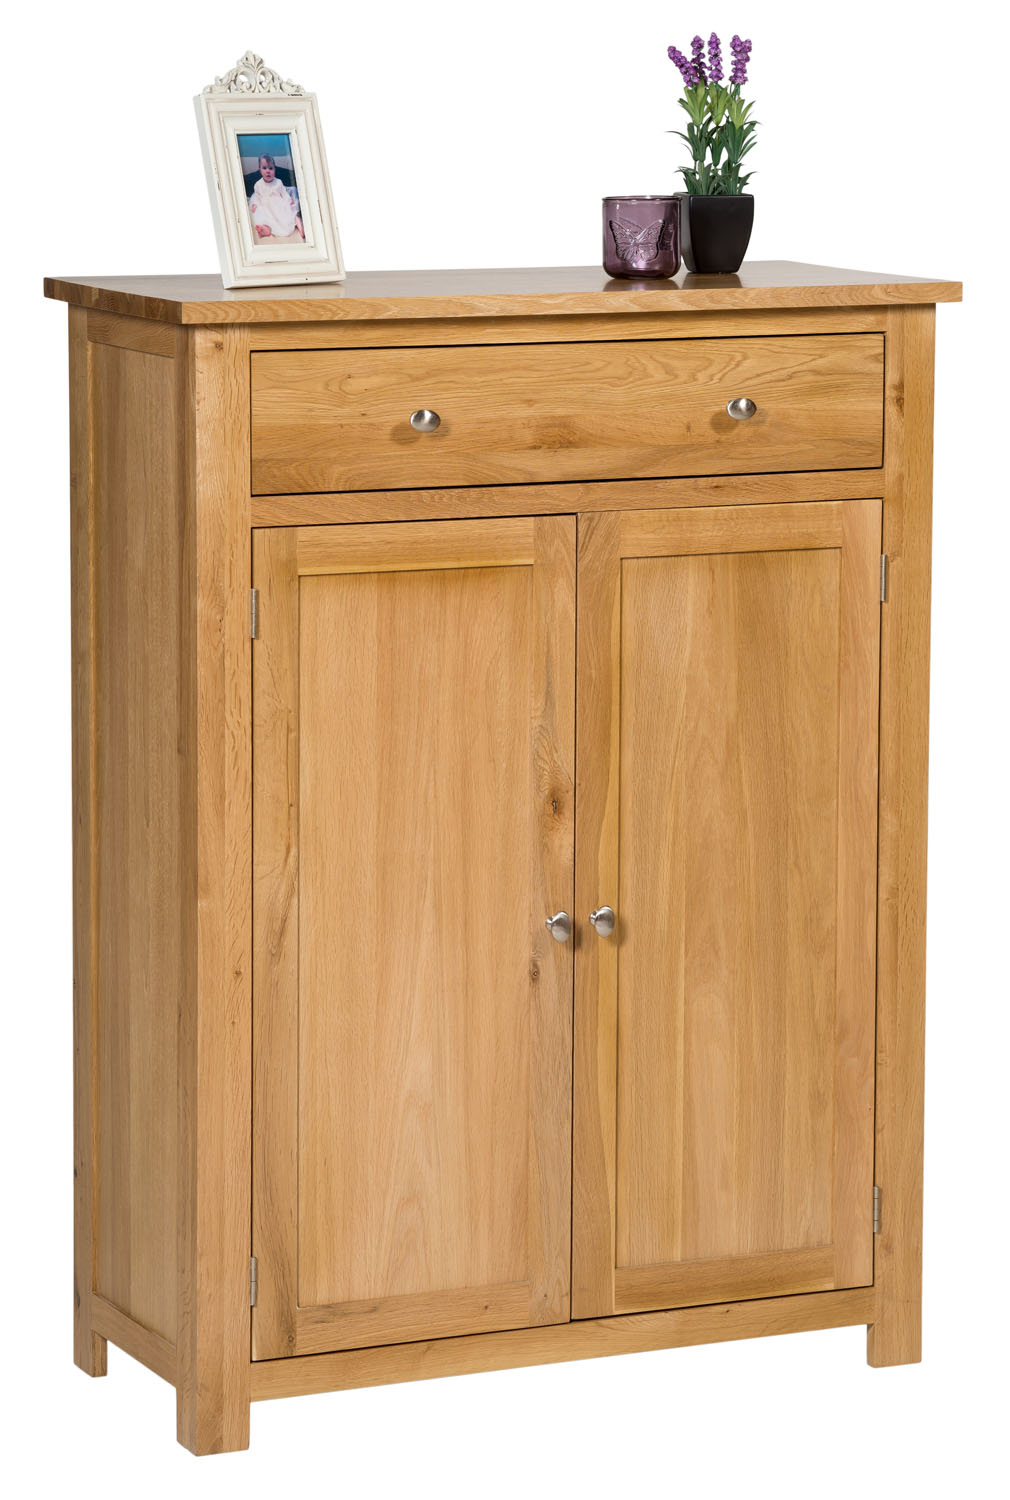 Large oak shoe storage cabinet wooden hallway cupboard for Cupboard cabinet